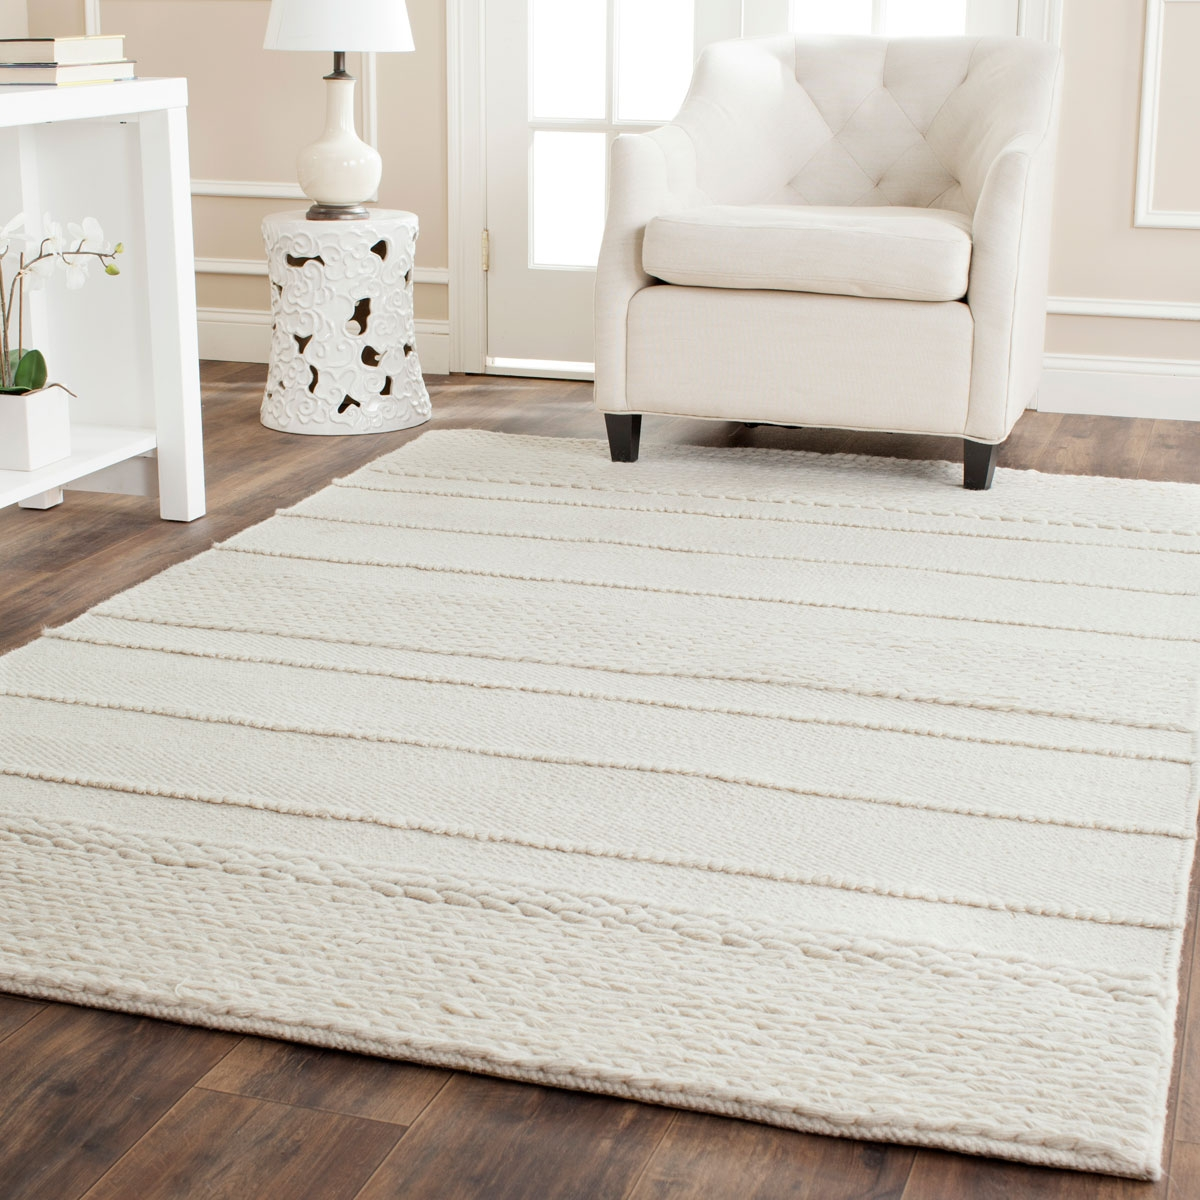 Rug Nat215a Natura Area Rugs Safavieh With Regard To 4×6 Wool Area Rugs (#8 of 15)